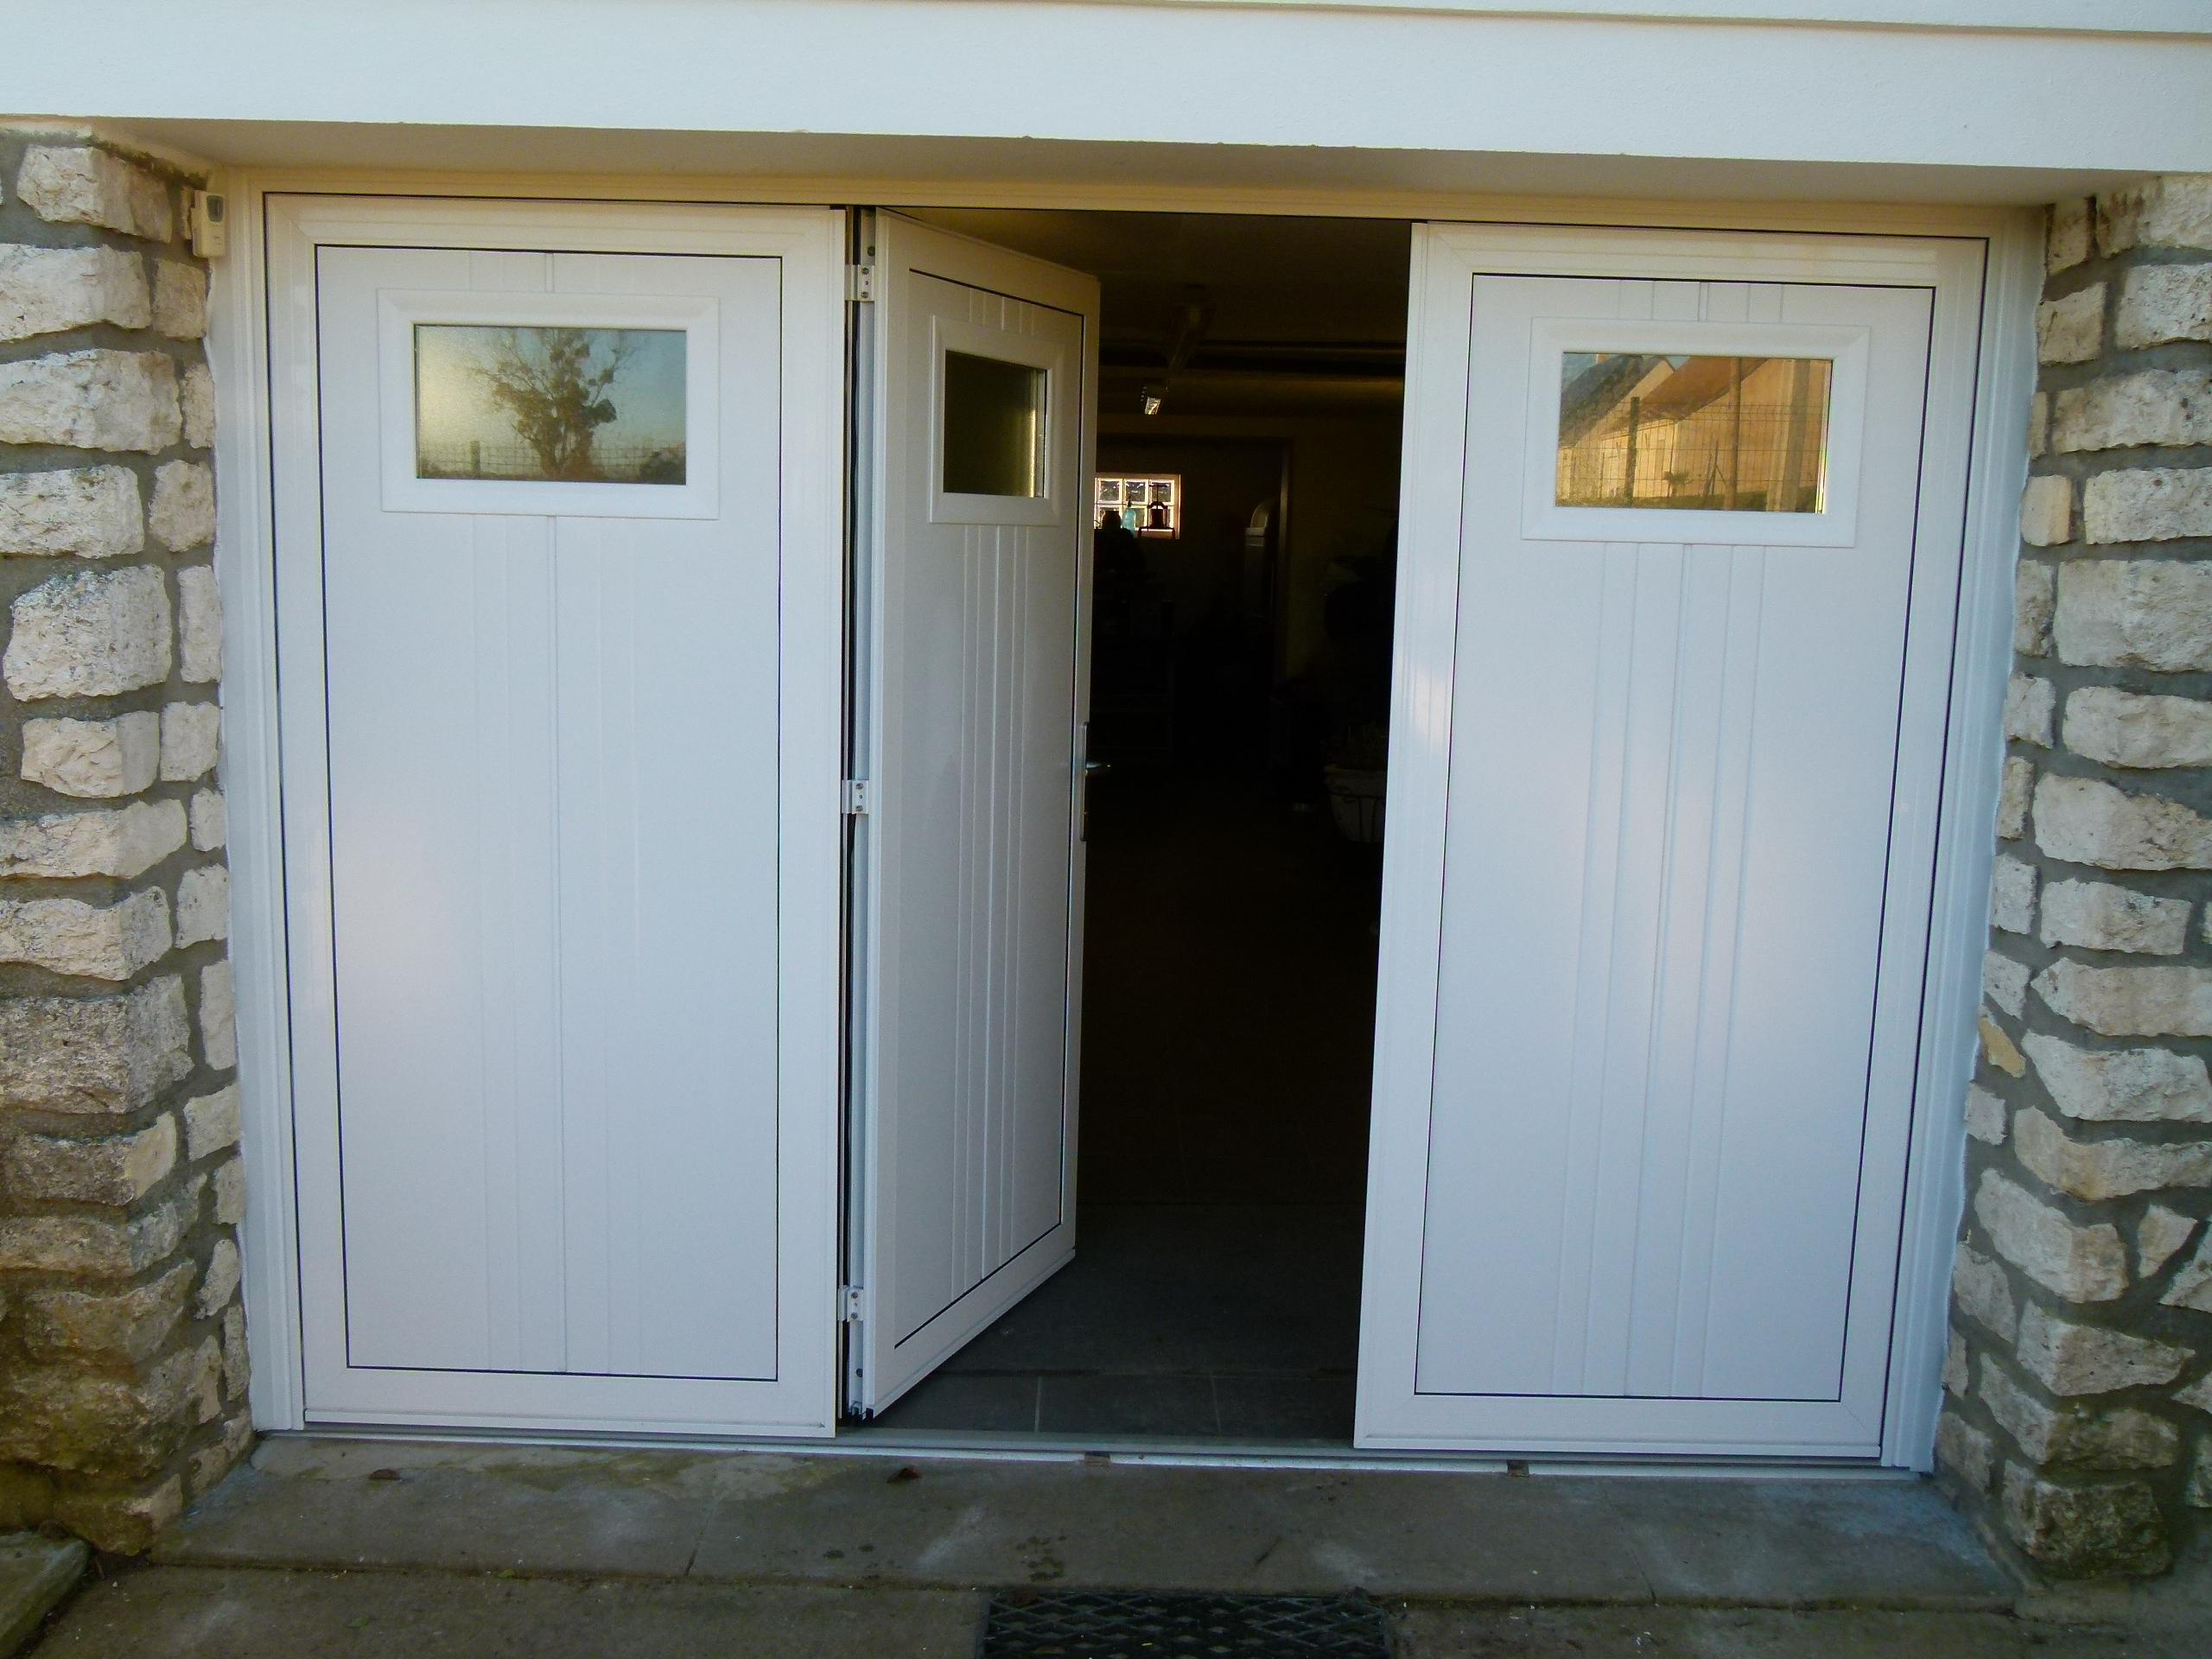 R alisations de travaux de r novation et isolation - Baie vitree porte de garage ...